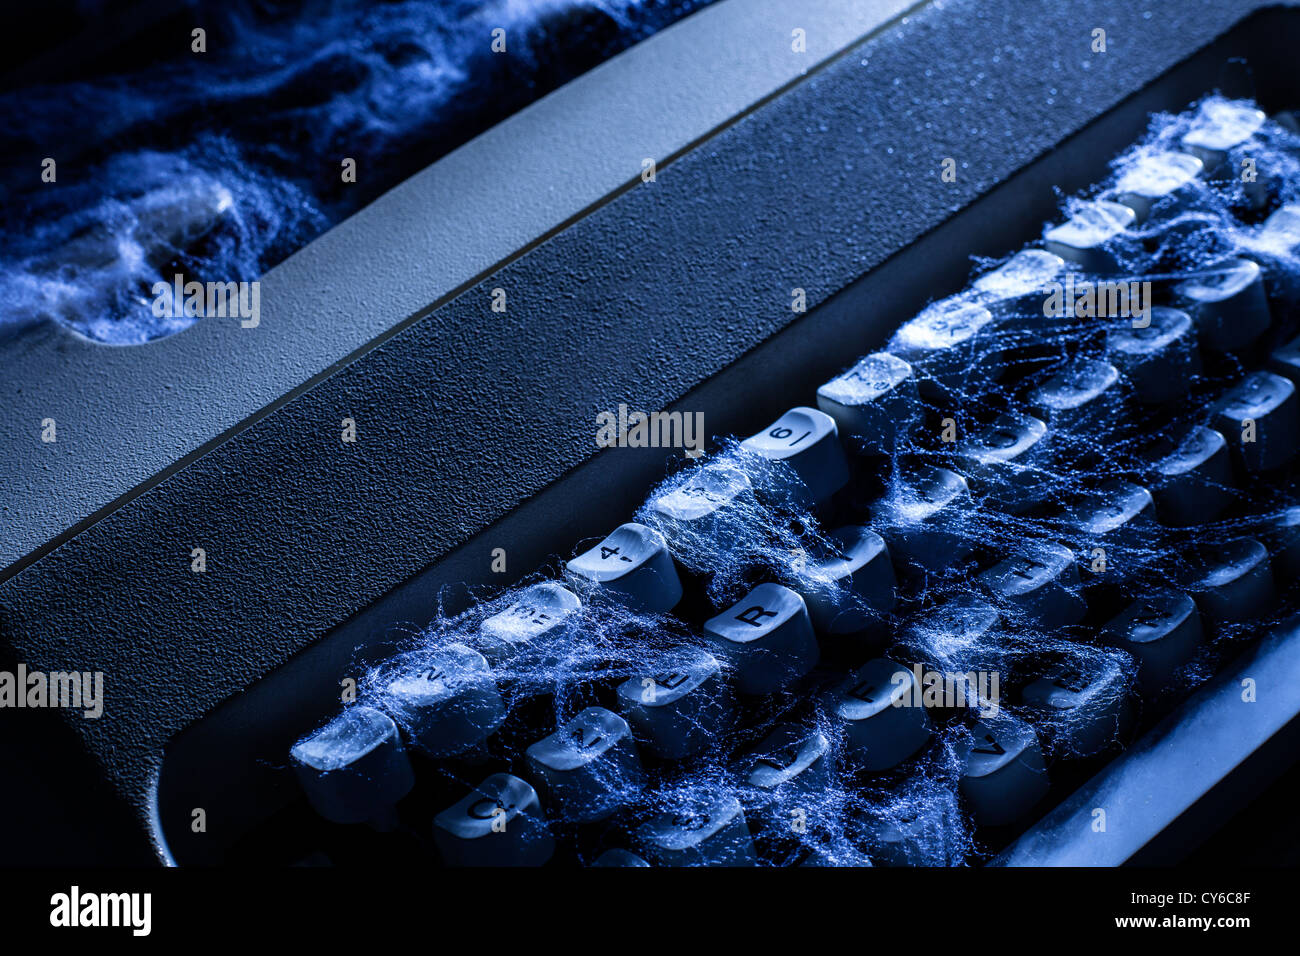 Old Typewriter with Spider Web - Stock Image